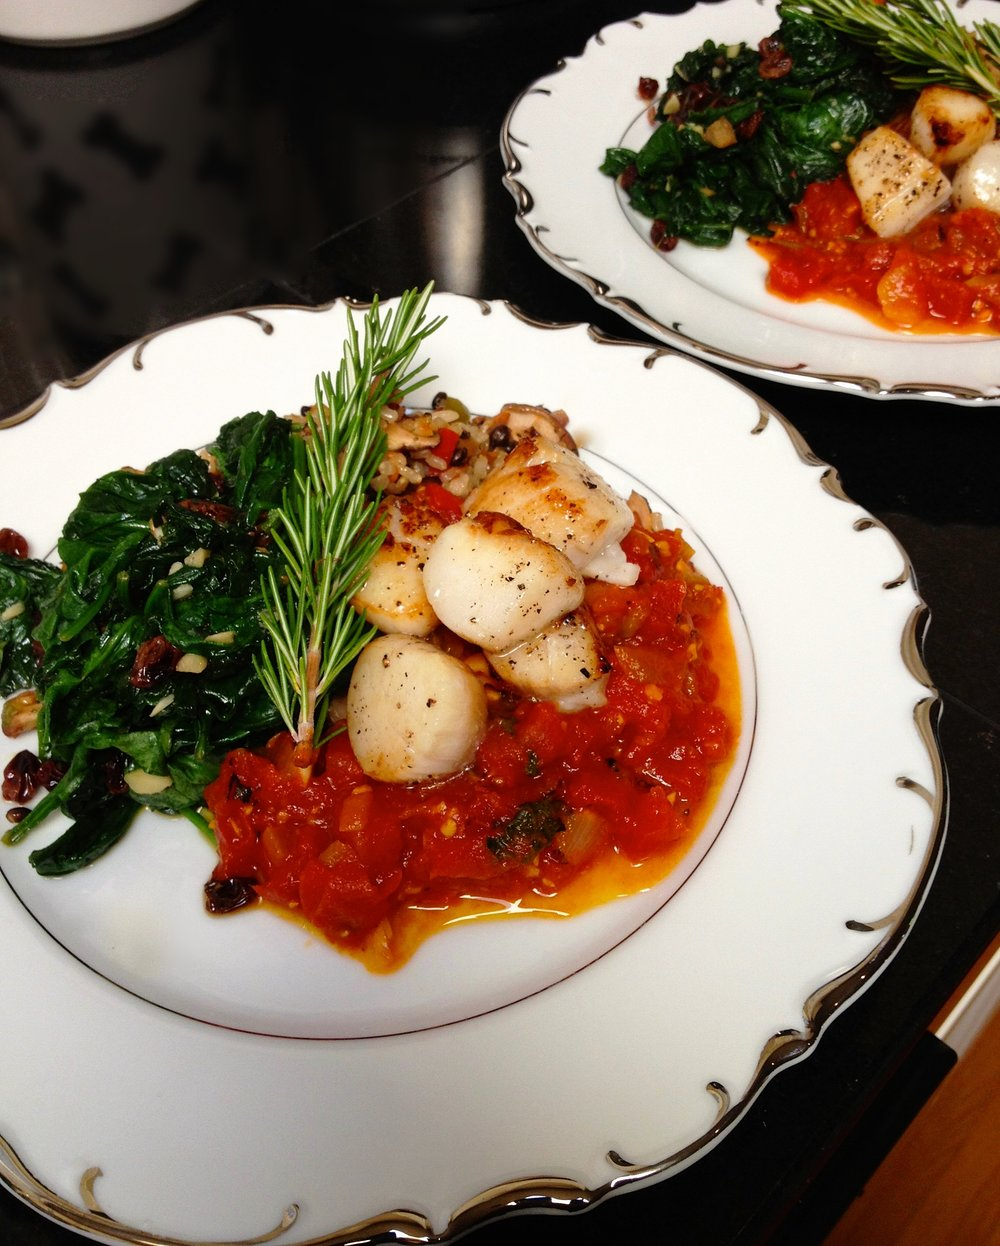 Scallops in Fire Roasted Tomato Saffron Broth w/Golden Raisin Garlic Spinach